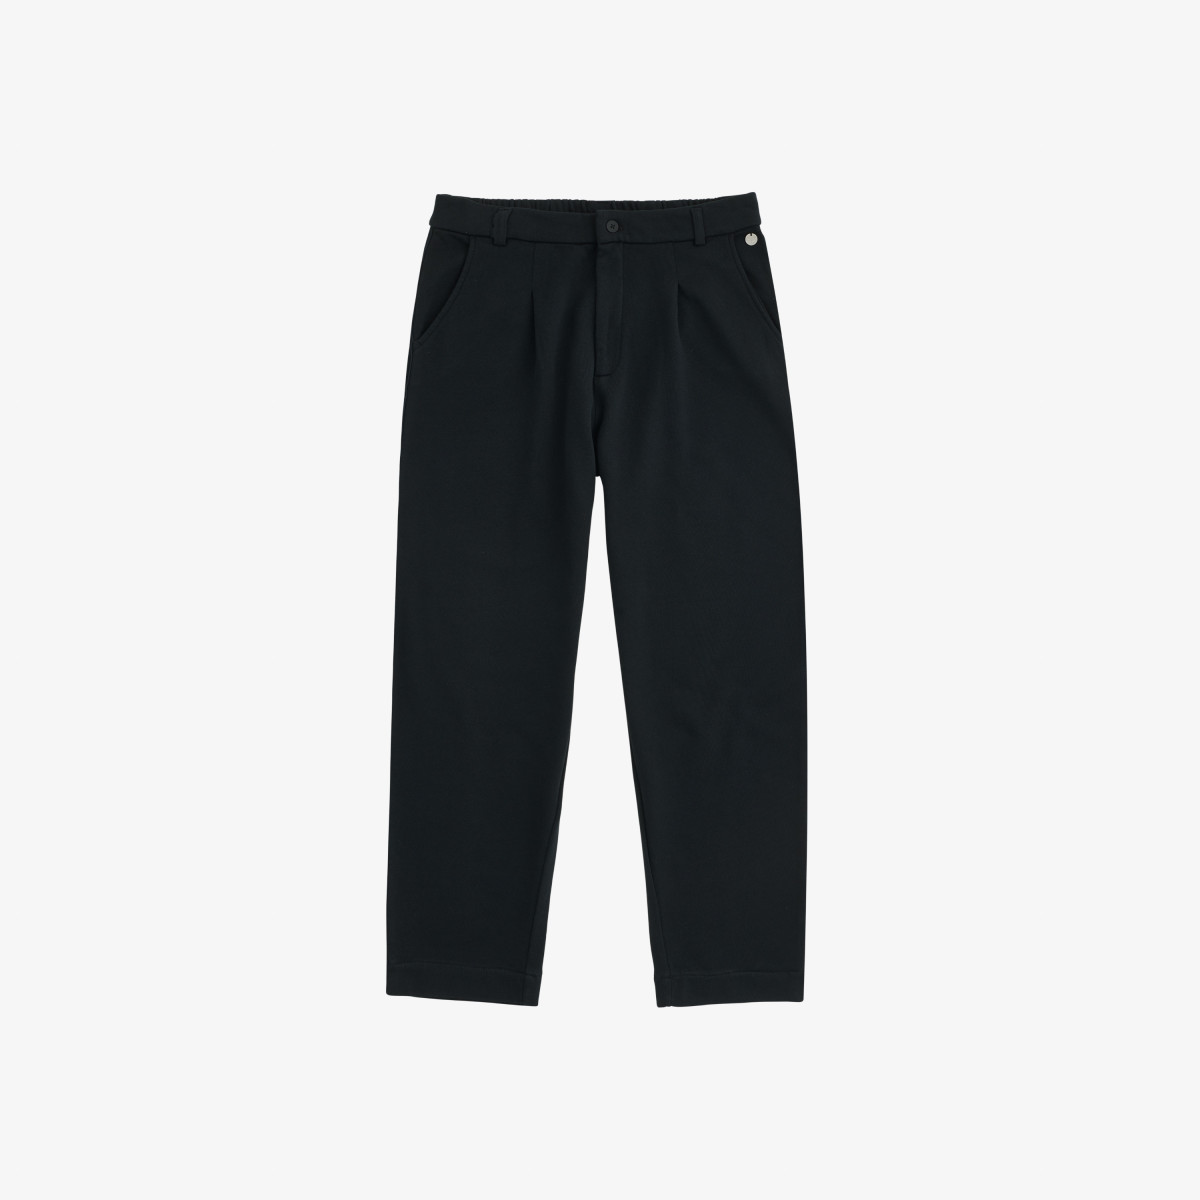 PANT FORMAL COTTON FL. BLACK